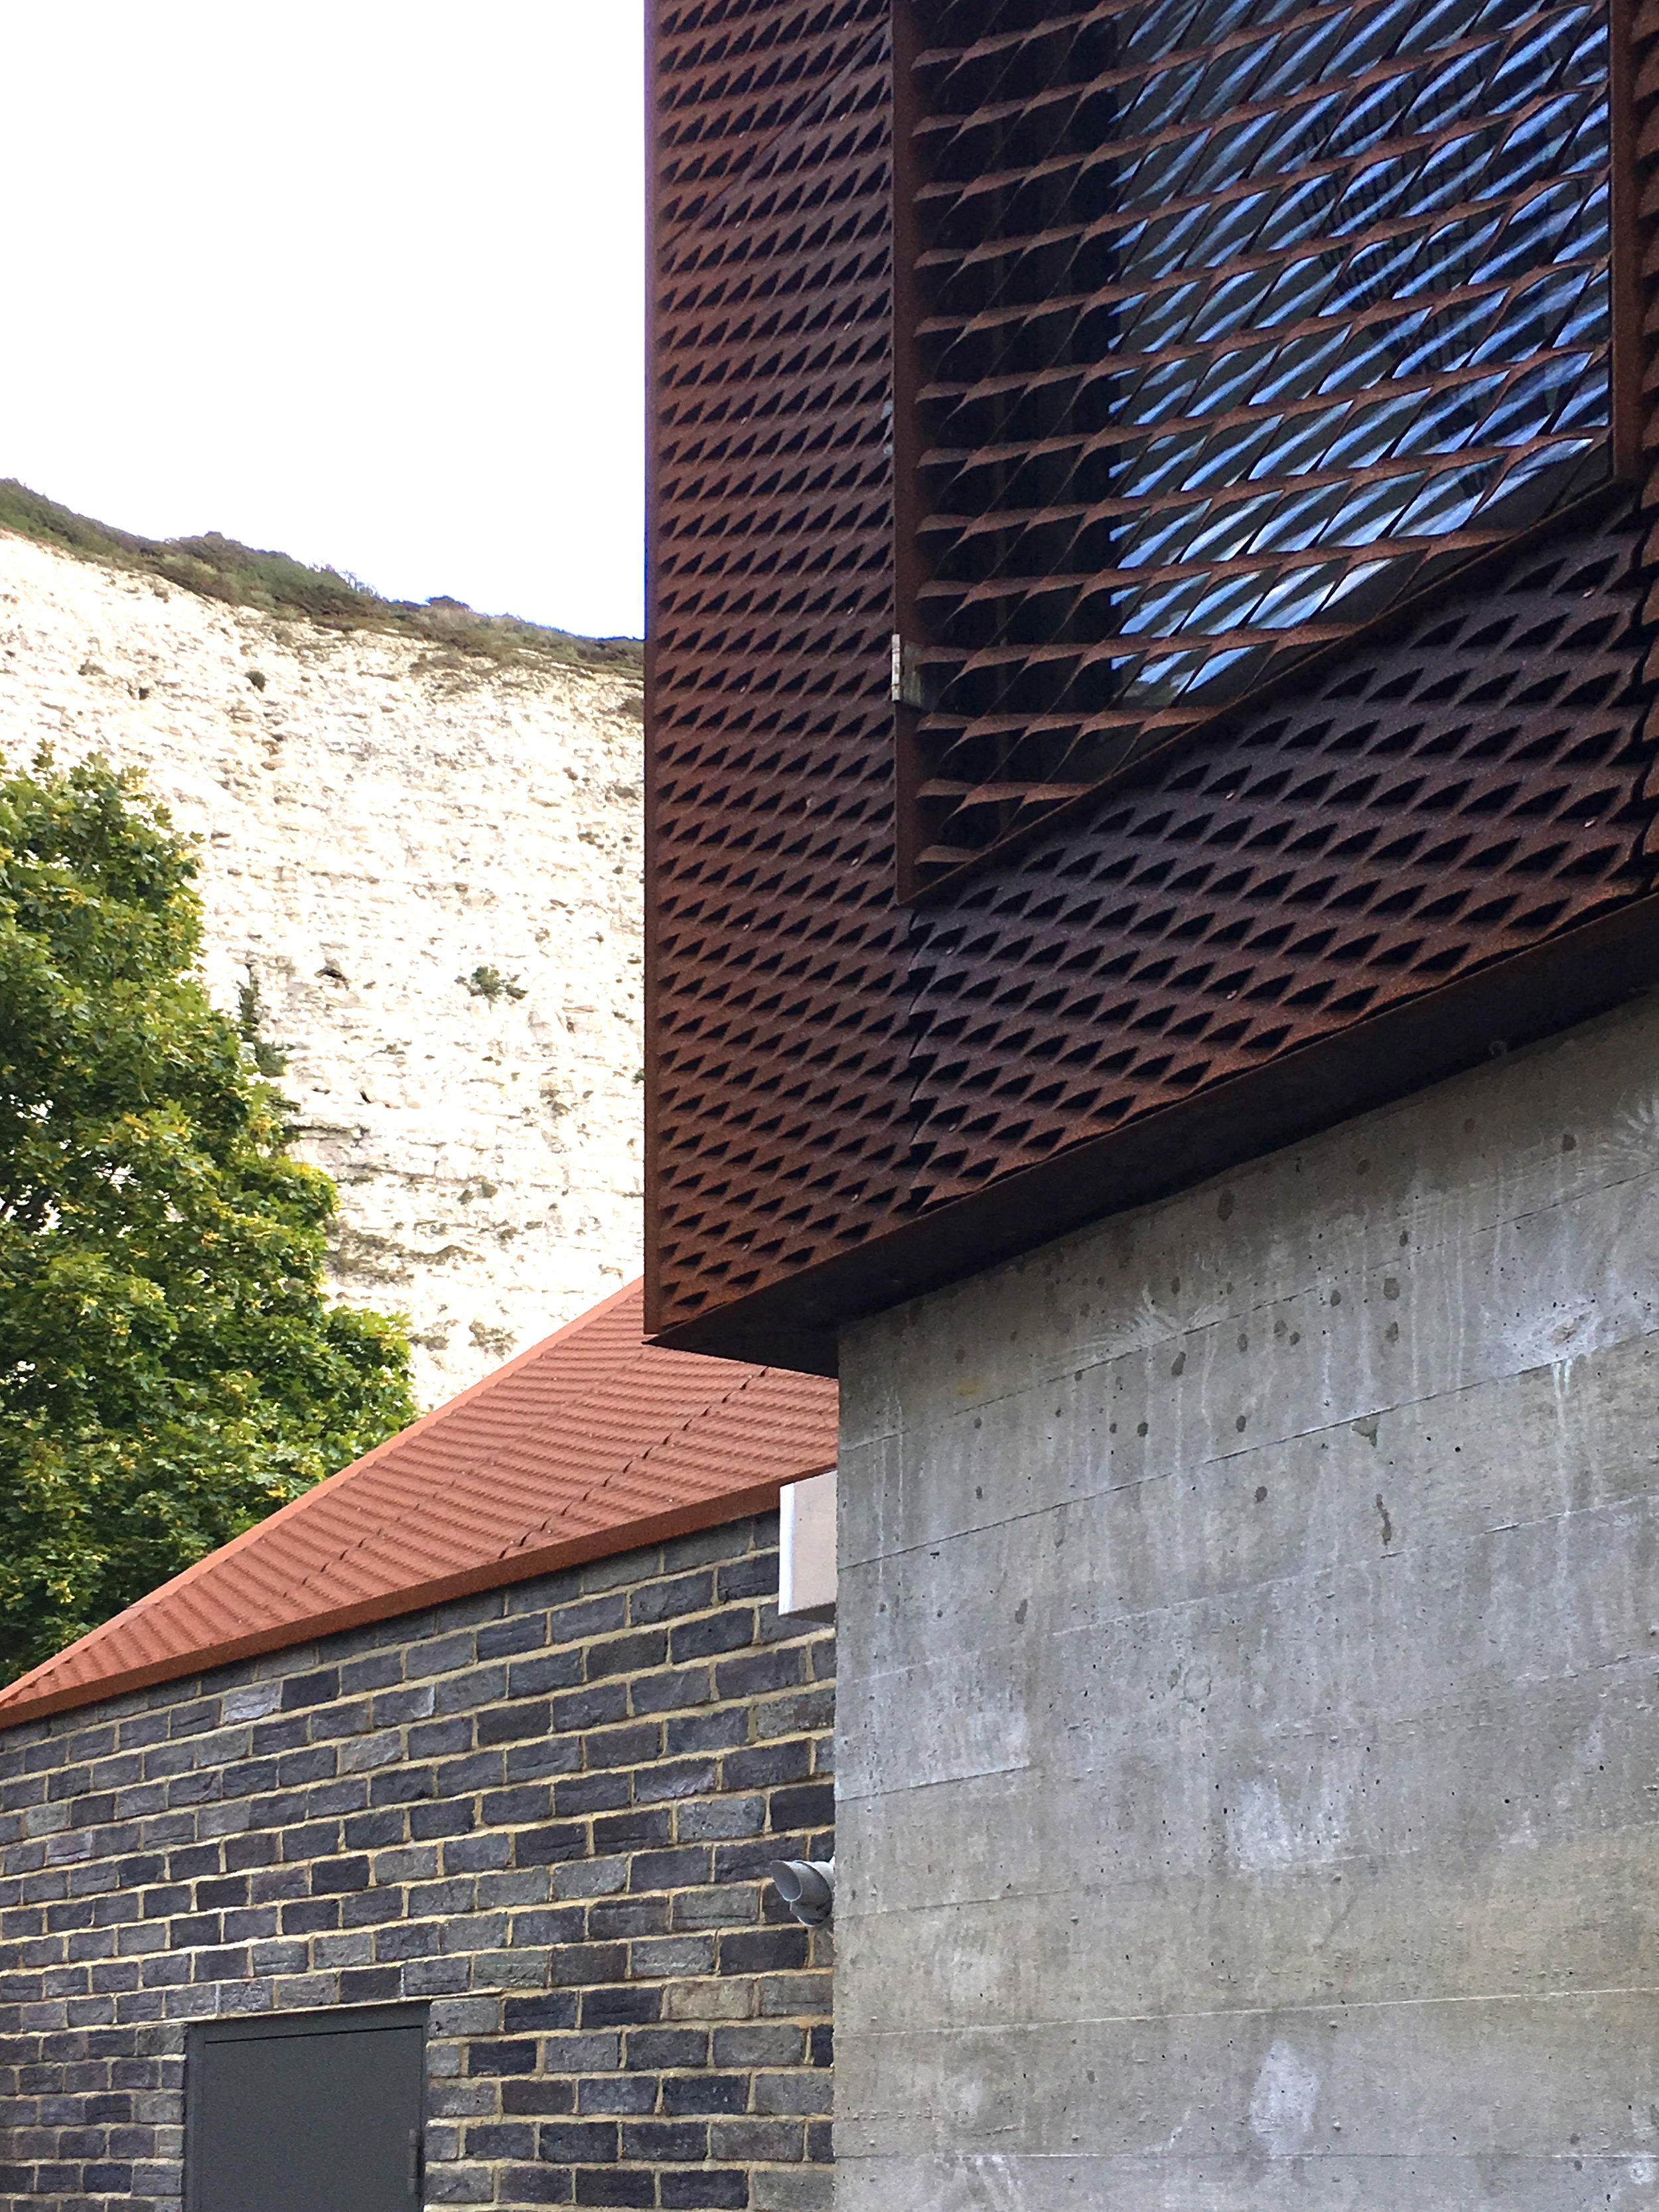 RIBA Sussex Branch visit to see South Street Lewes by Sandy Rendel Architects. Beautiful shutter concrete structure with corten cladding.